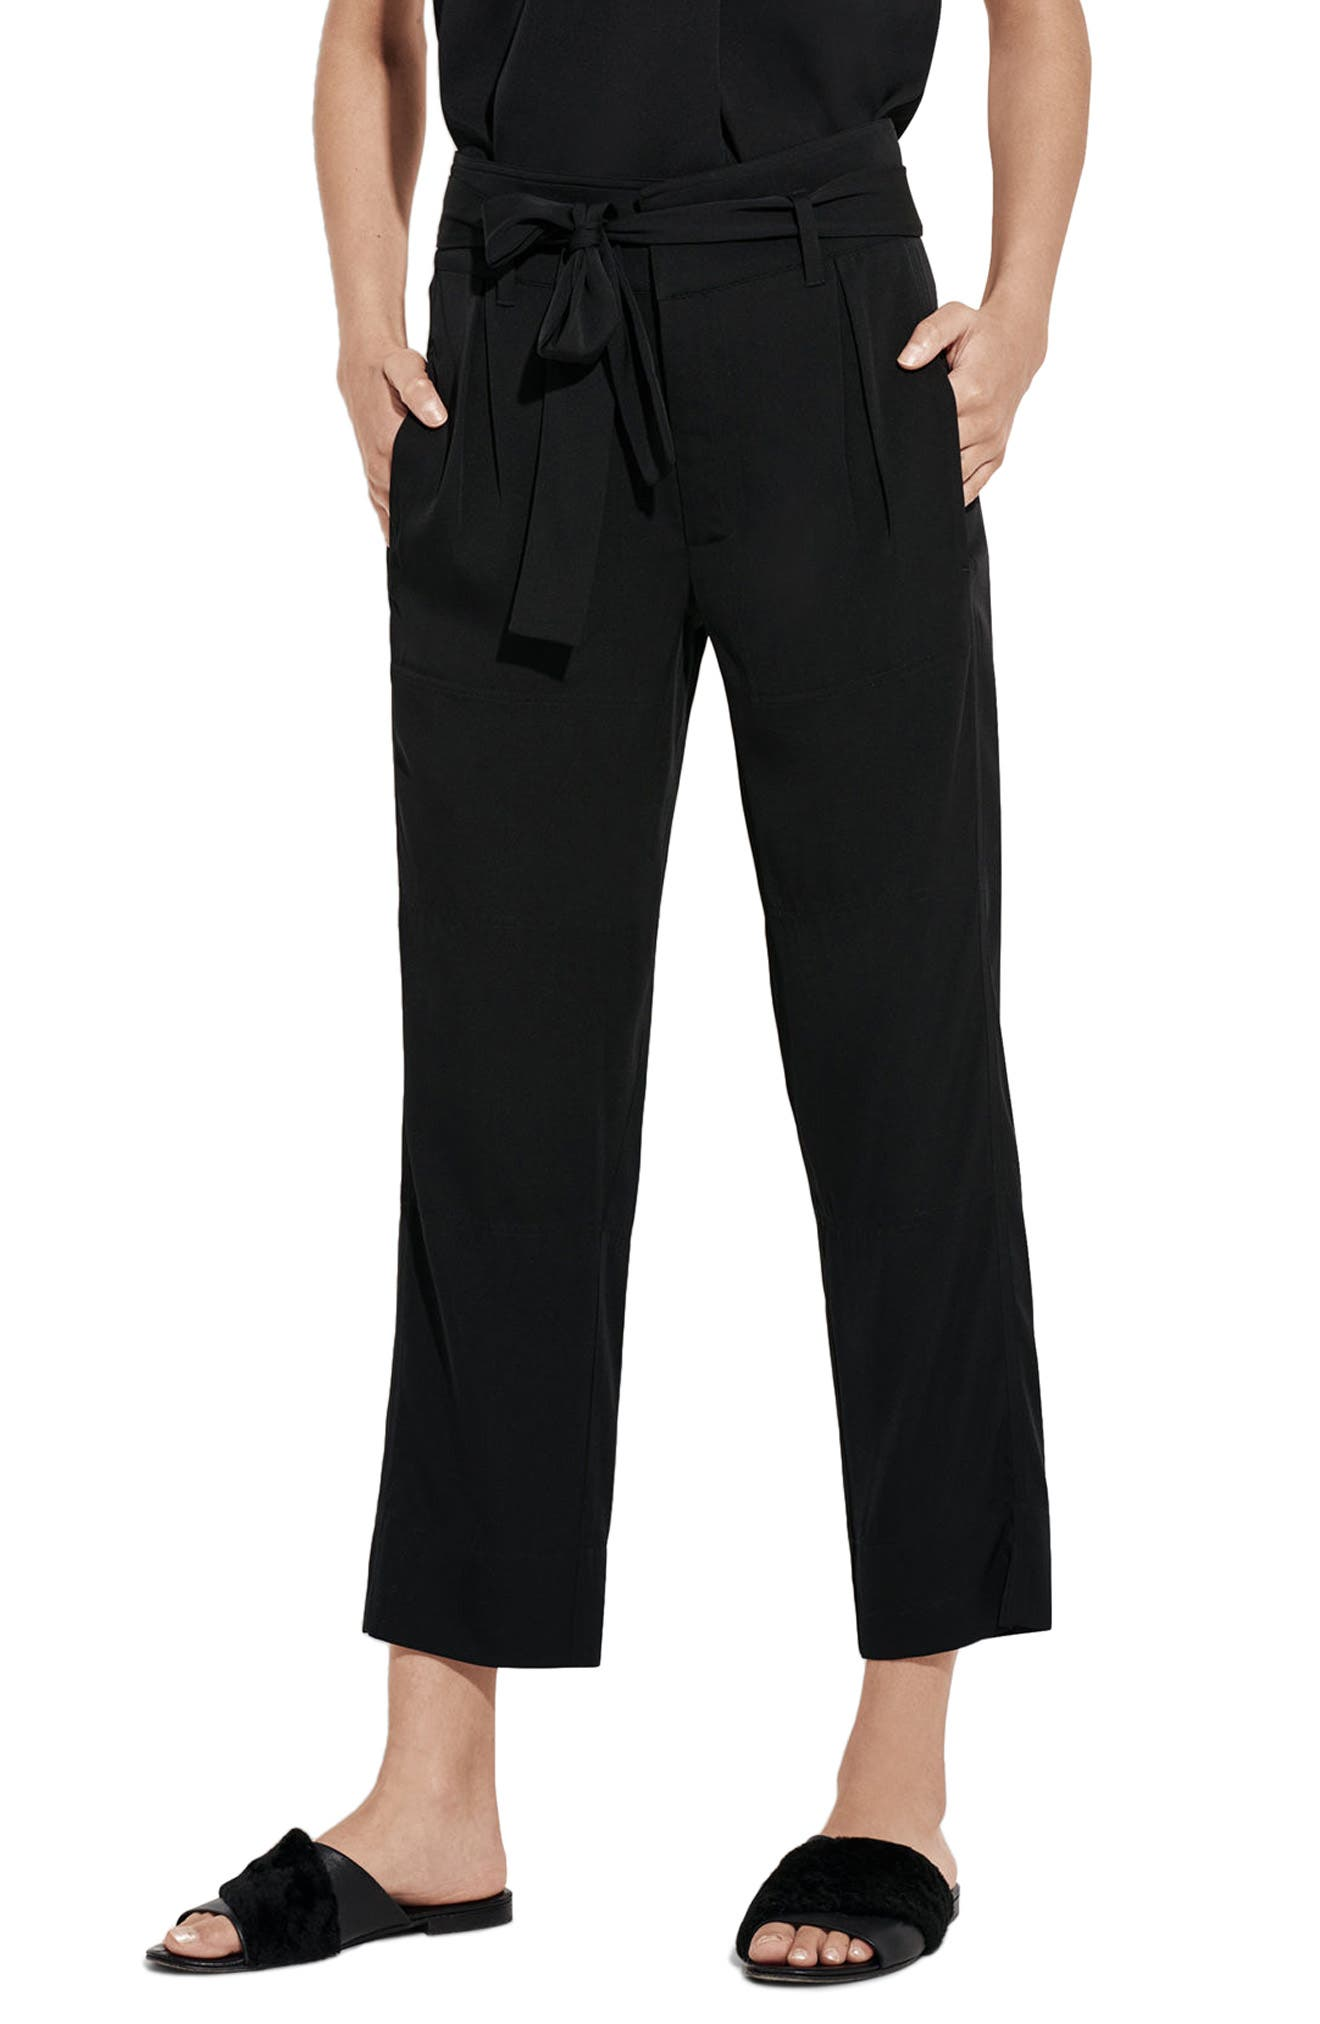 The Mirage High Waist Crop Straight Leg Pants,                             Main thumbnail 1, color,                             001